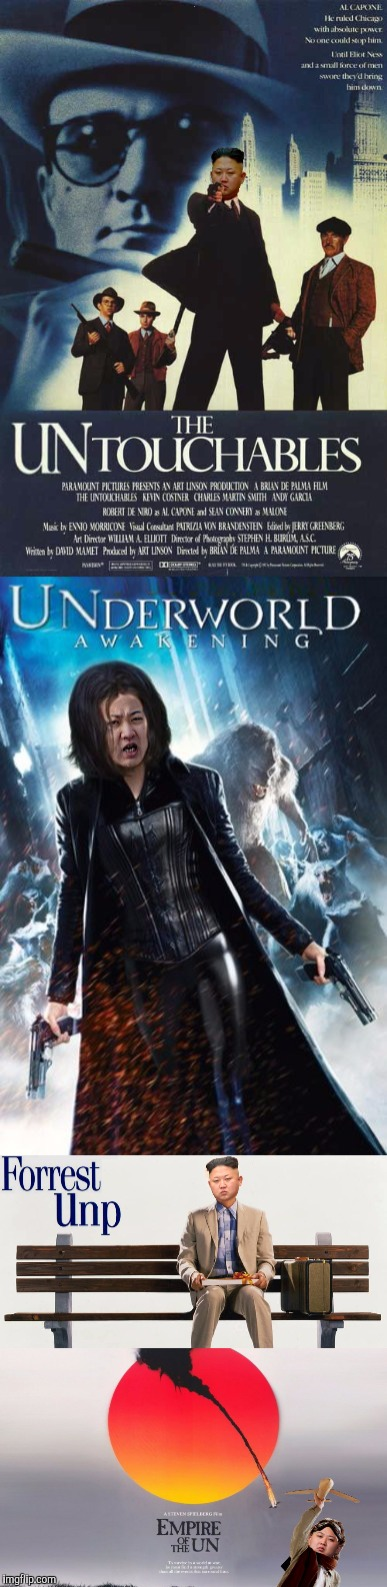 UNINFILM PART1 | . | image tagged in kim jung un,movies,funny | made w/ Imgflip meme maker